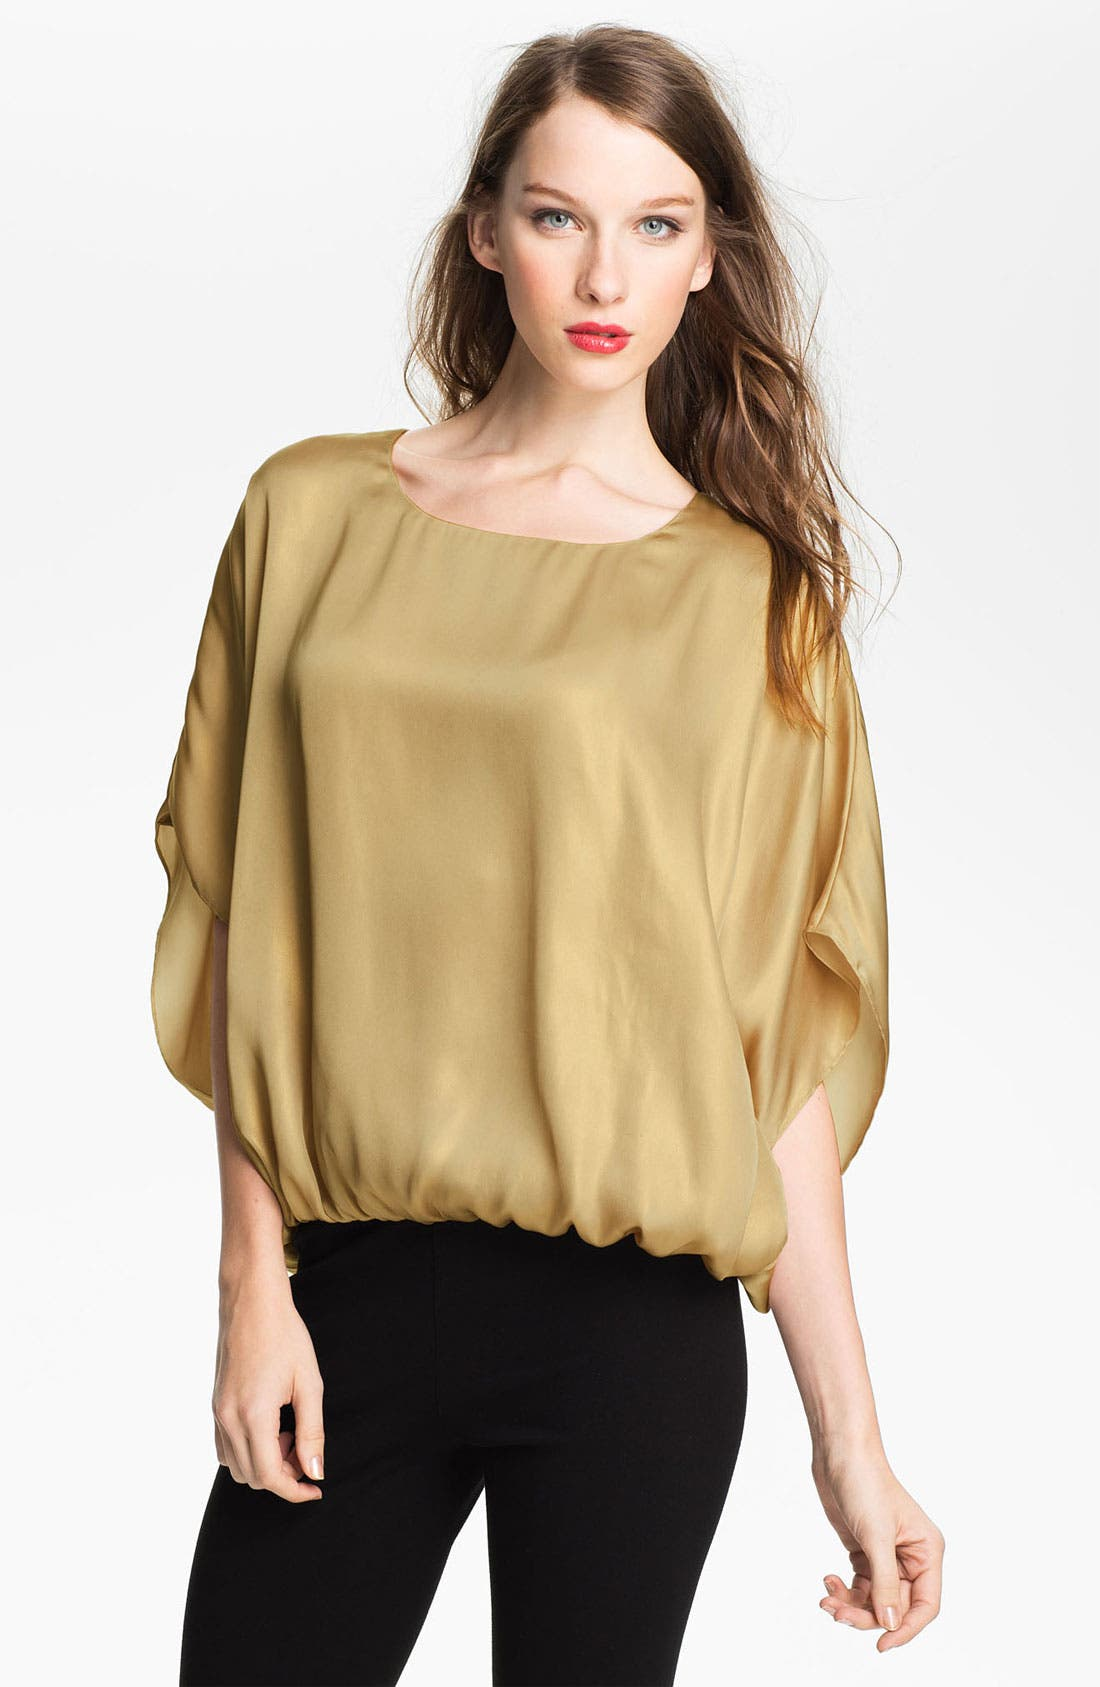 Alternate Image 1 Selected - Vince Camuto Gold Foil Blouse